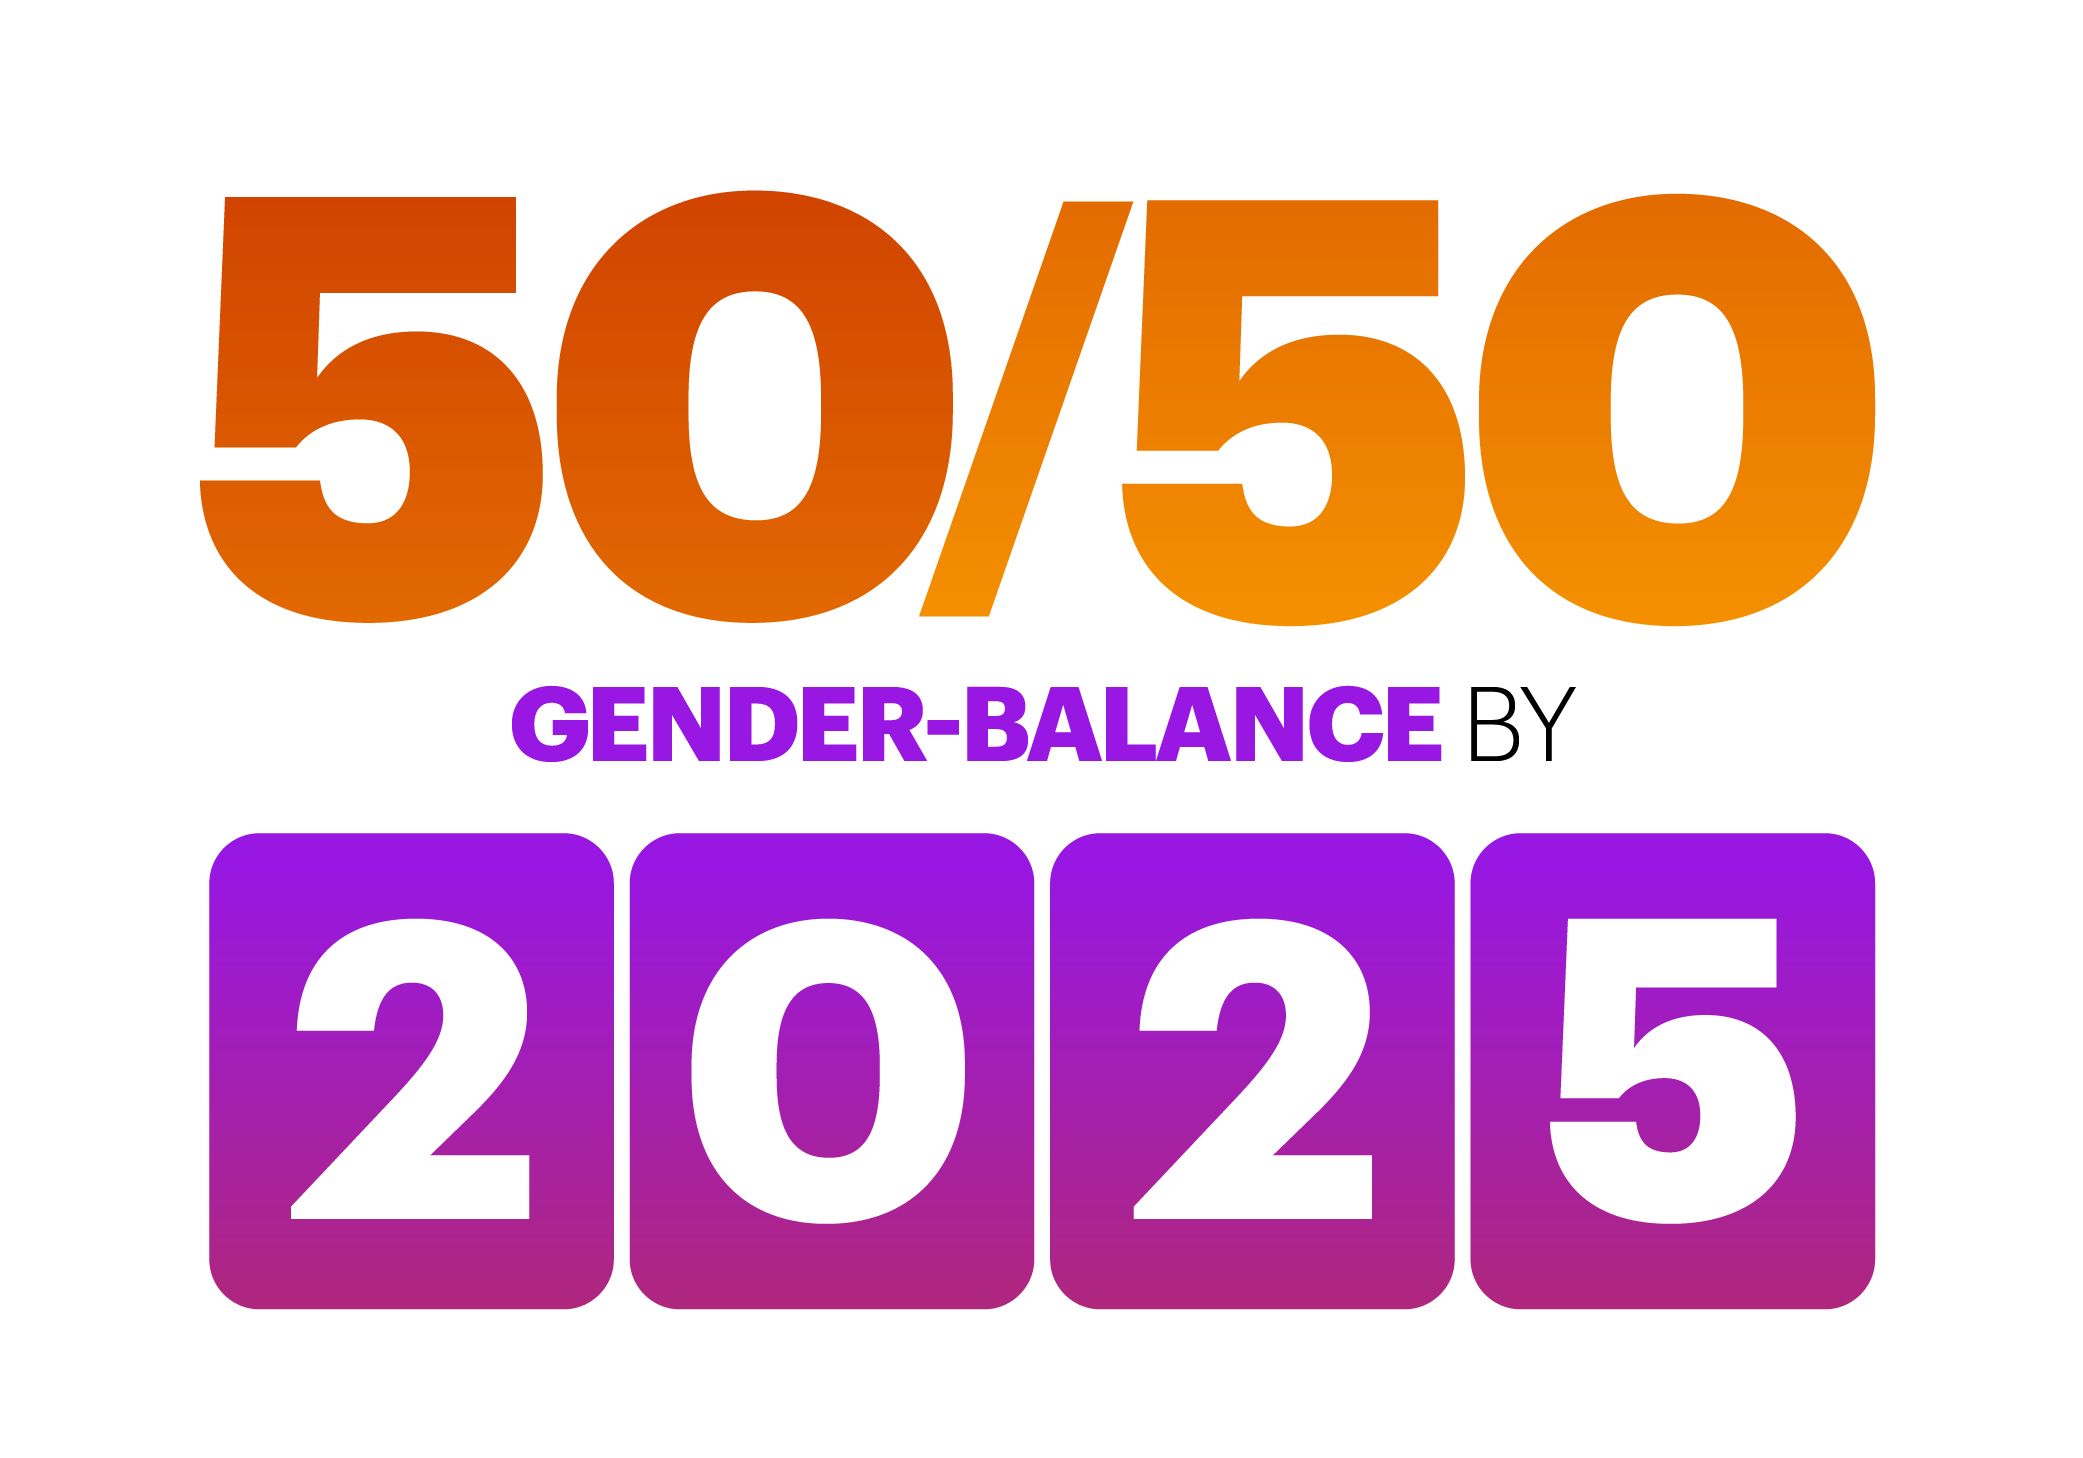 Accenture sets new goal of achieving a gender-balanced workforce, with 50% women and 50% men, by 2025